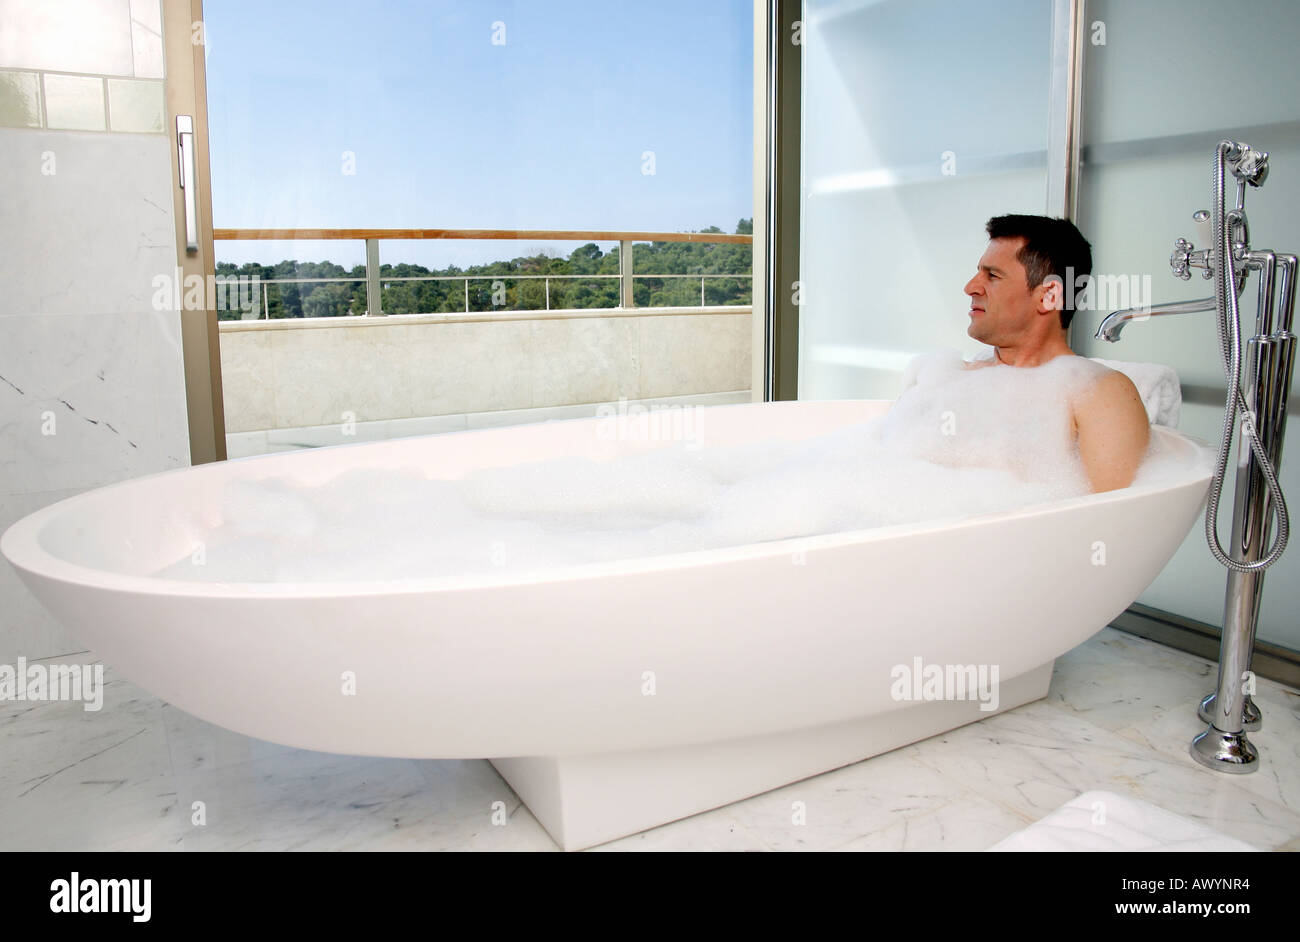 Man relaxing in bathtub with bubbles Stock Photo: 9532211 - Alamy